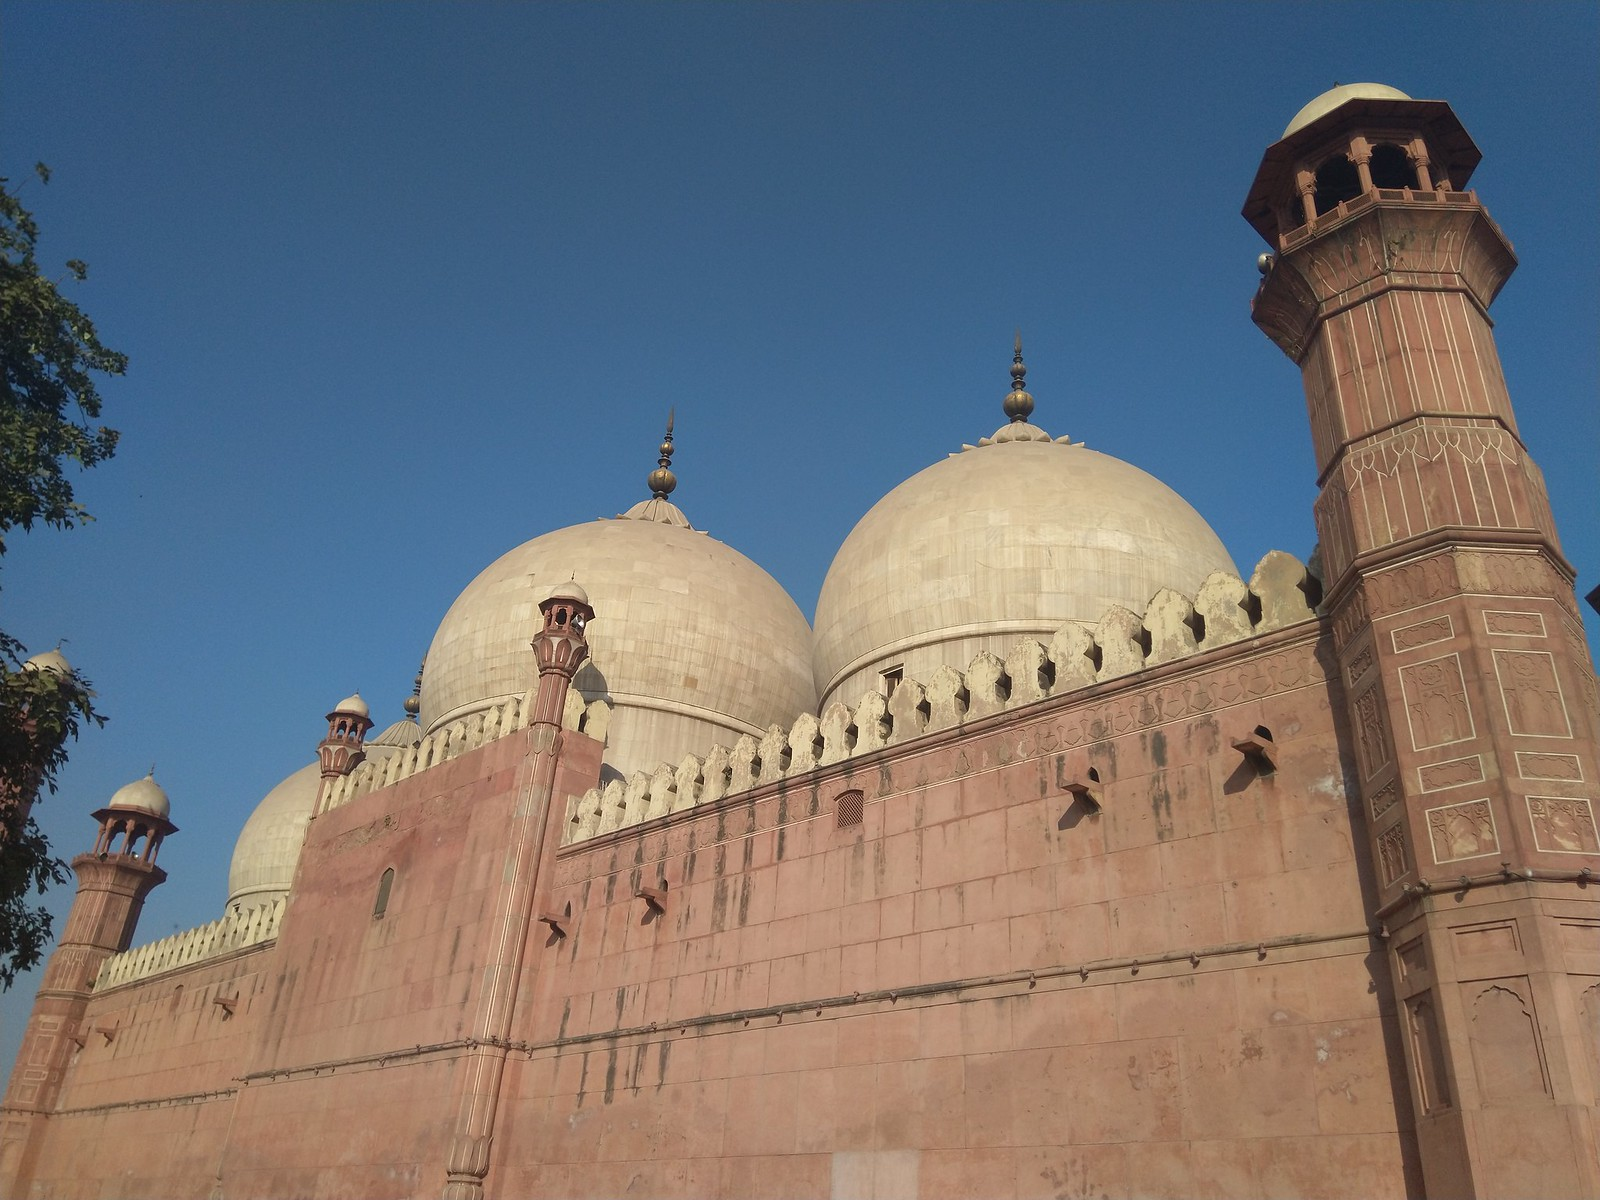 Badshahi Mosque Pic with Auto Mode on Nokia 6.1 Plus